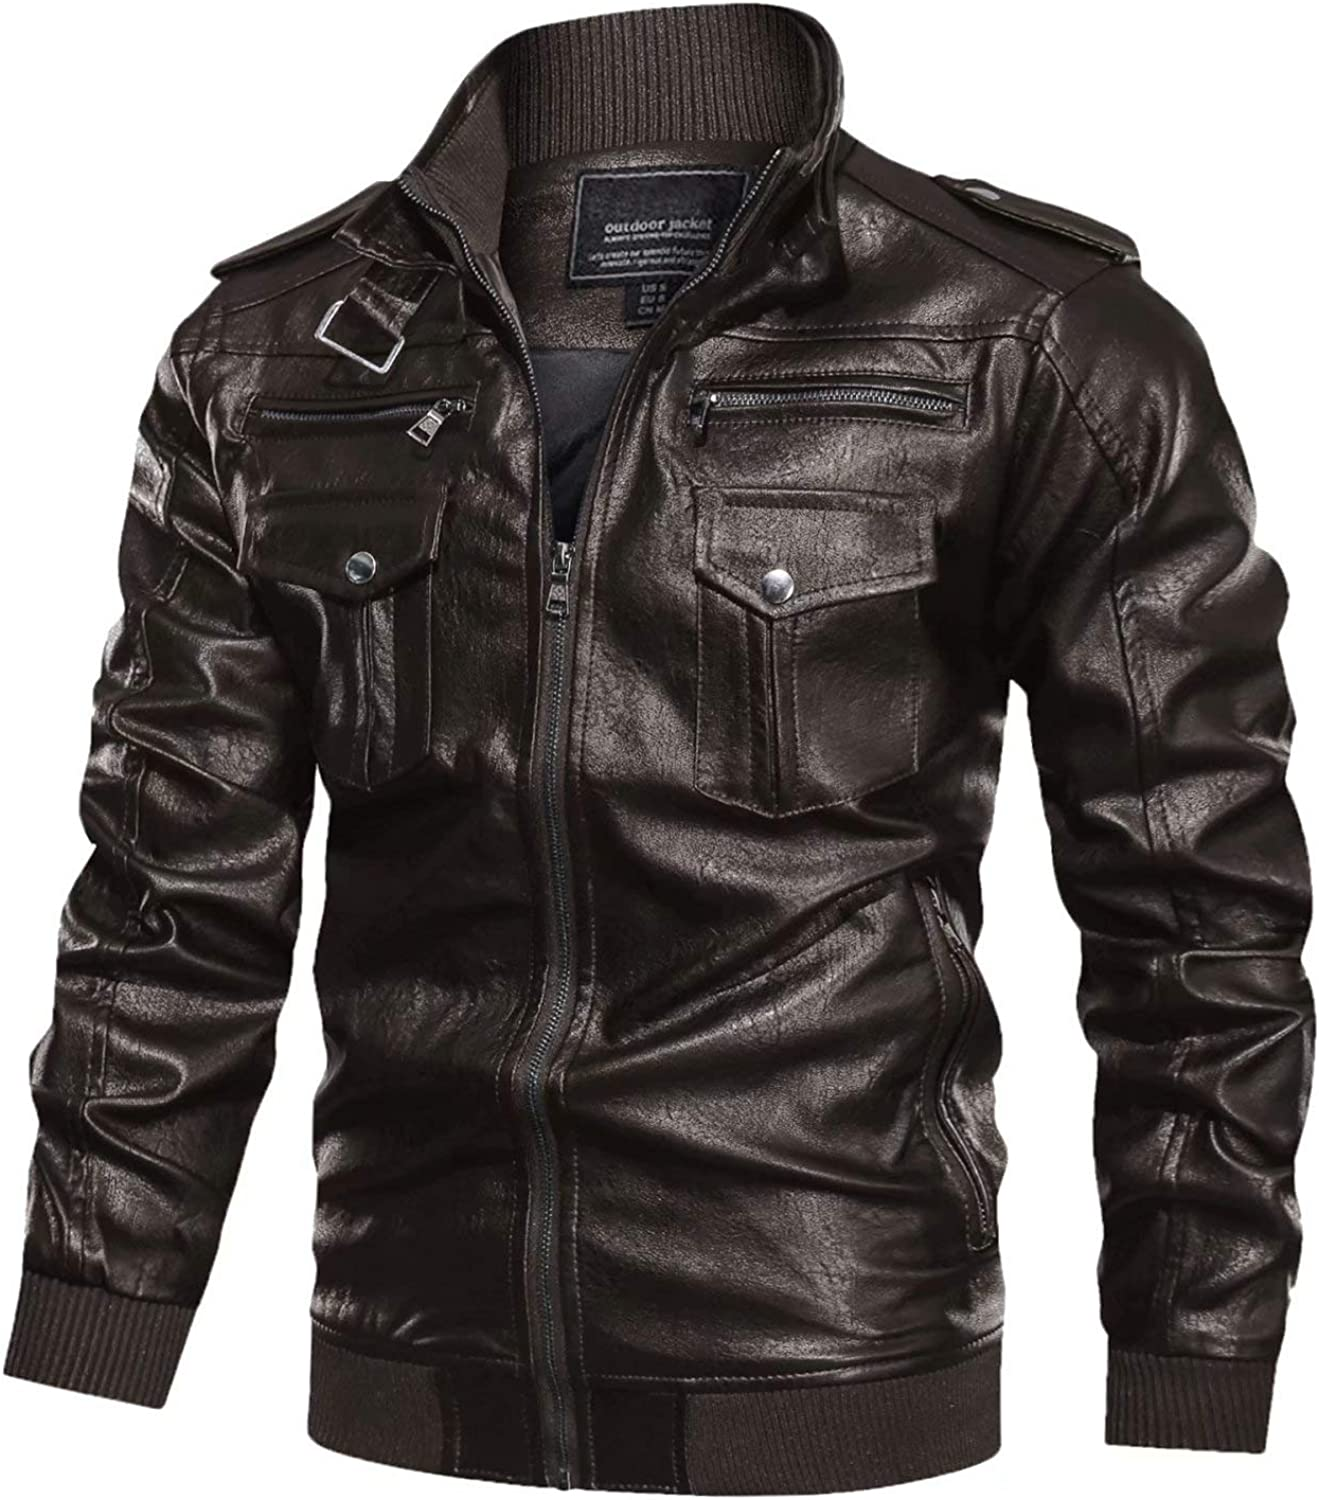 MAGCOMSEN Mens Max 62% OFF Men's Vintage Pu Faux 6 Pocke with Jacket Leather Lowest price challenge